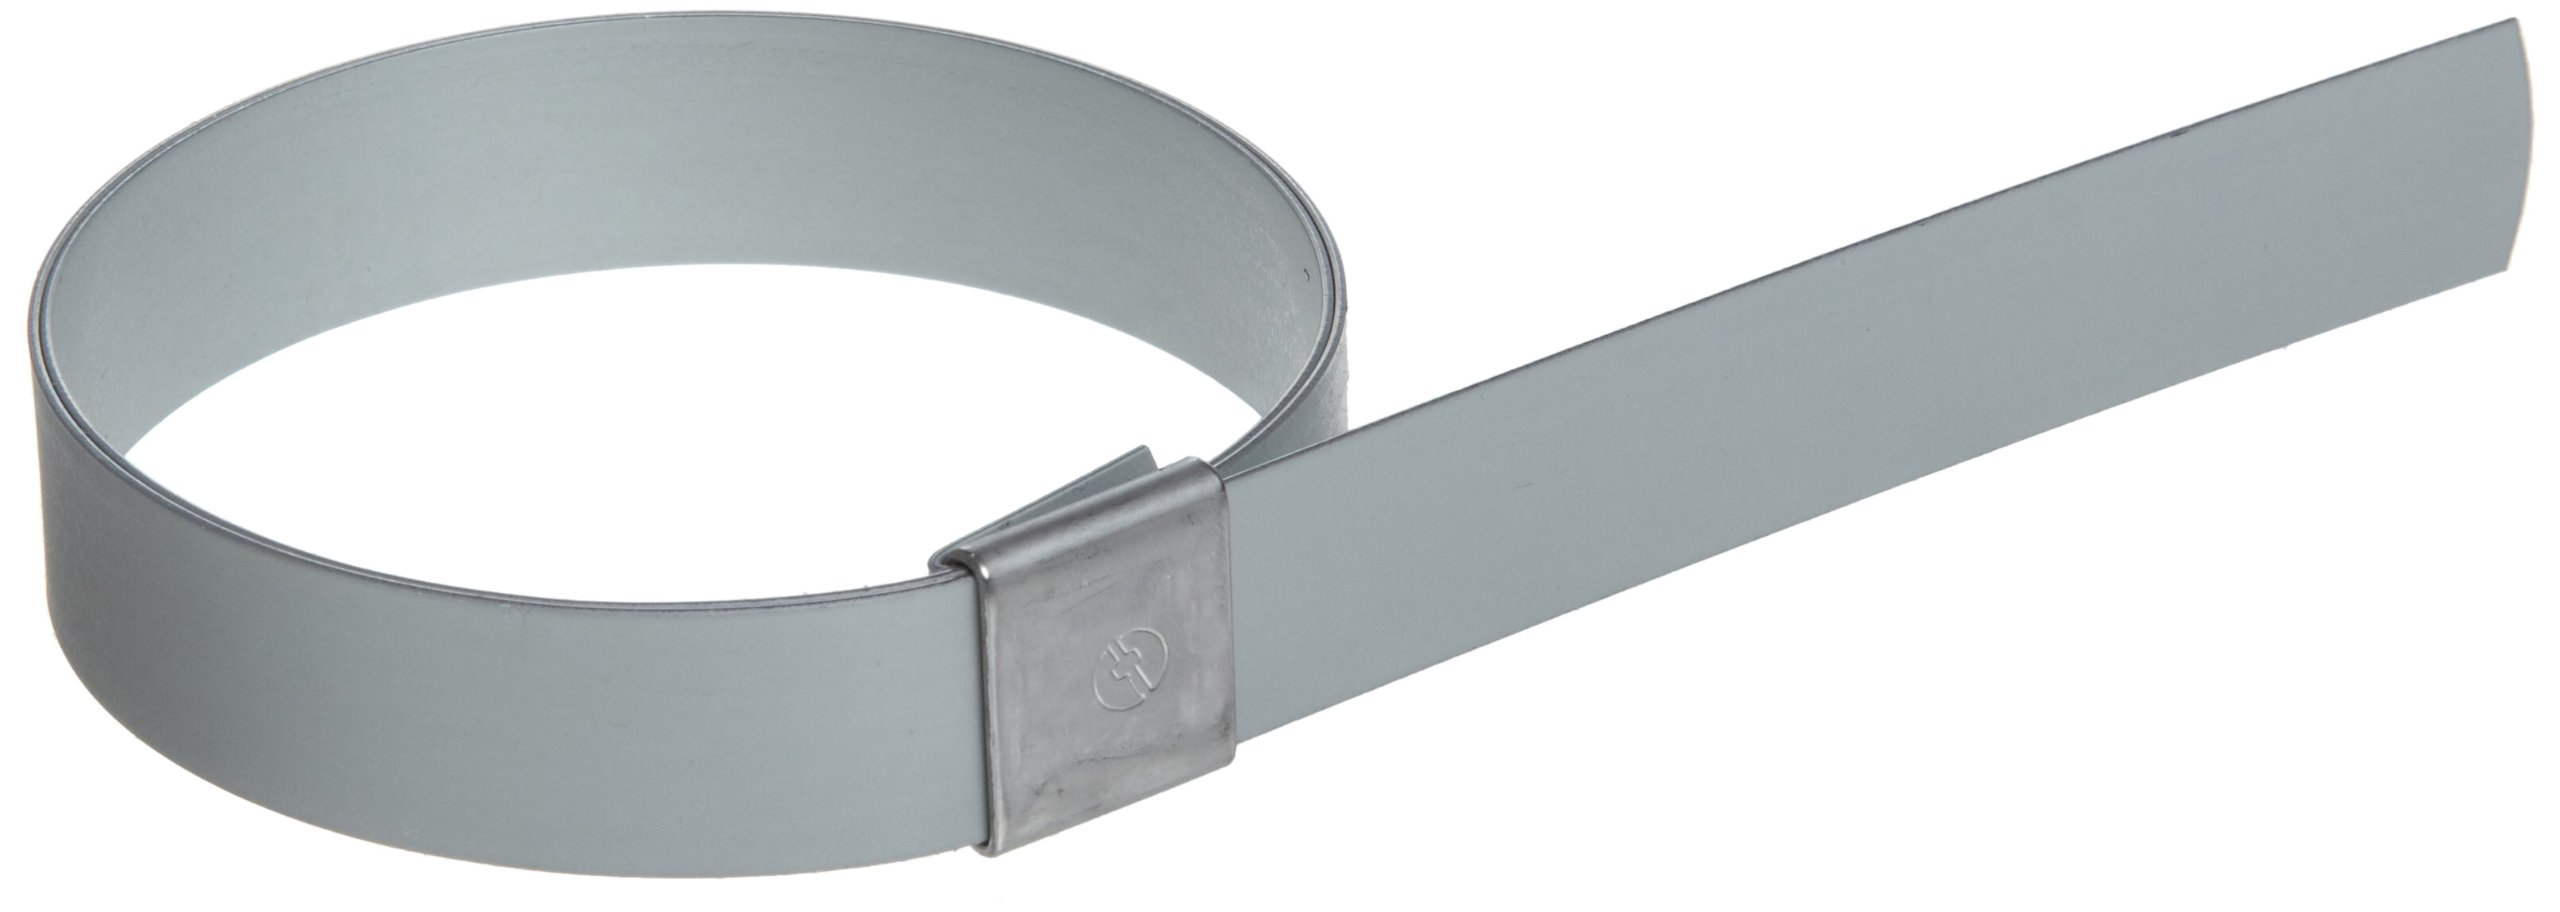 BAND-IT CP0799 5/8'' Wide x 0.025'' Thick 1-3/4'' Diameter, Galvanized Carbon Steel Center Punch Clamp (100 Per Box) by Band-It (Image #1)